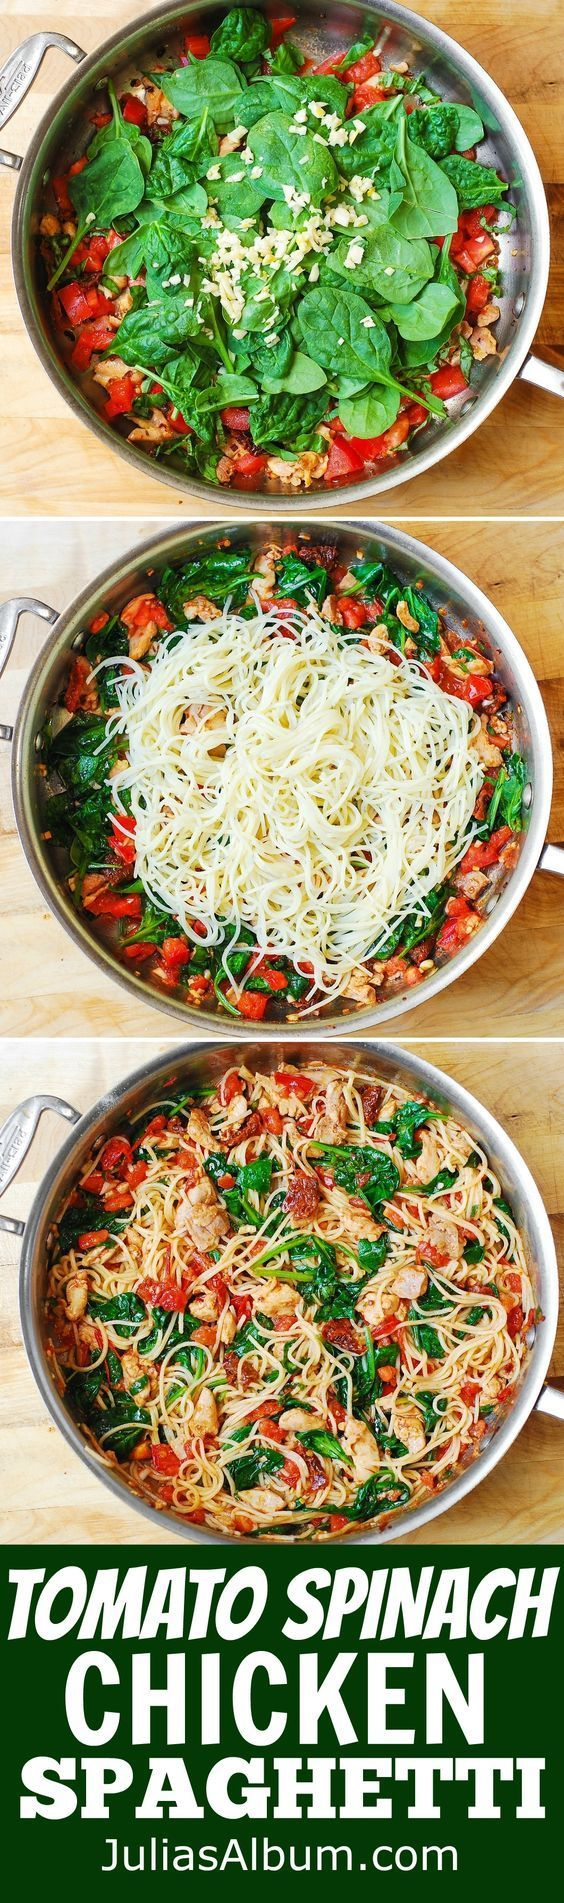 Tomato Basil & Spinach Chicken Spaghetti – healthy, light, Mediterranean style dinner, packed with vegetables, protein and good oils.